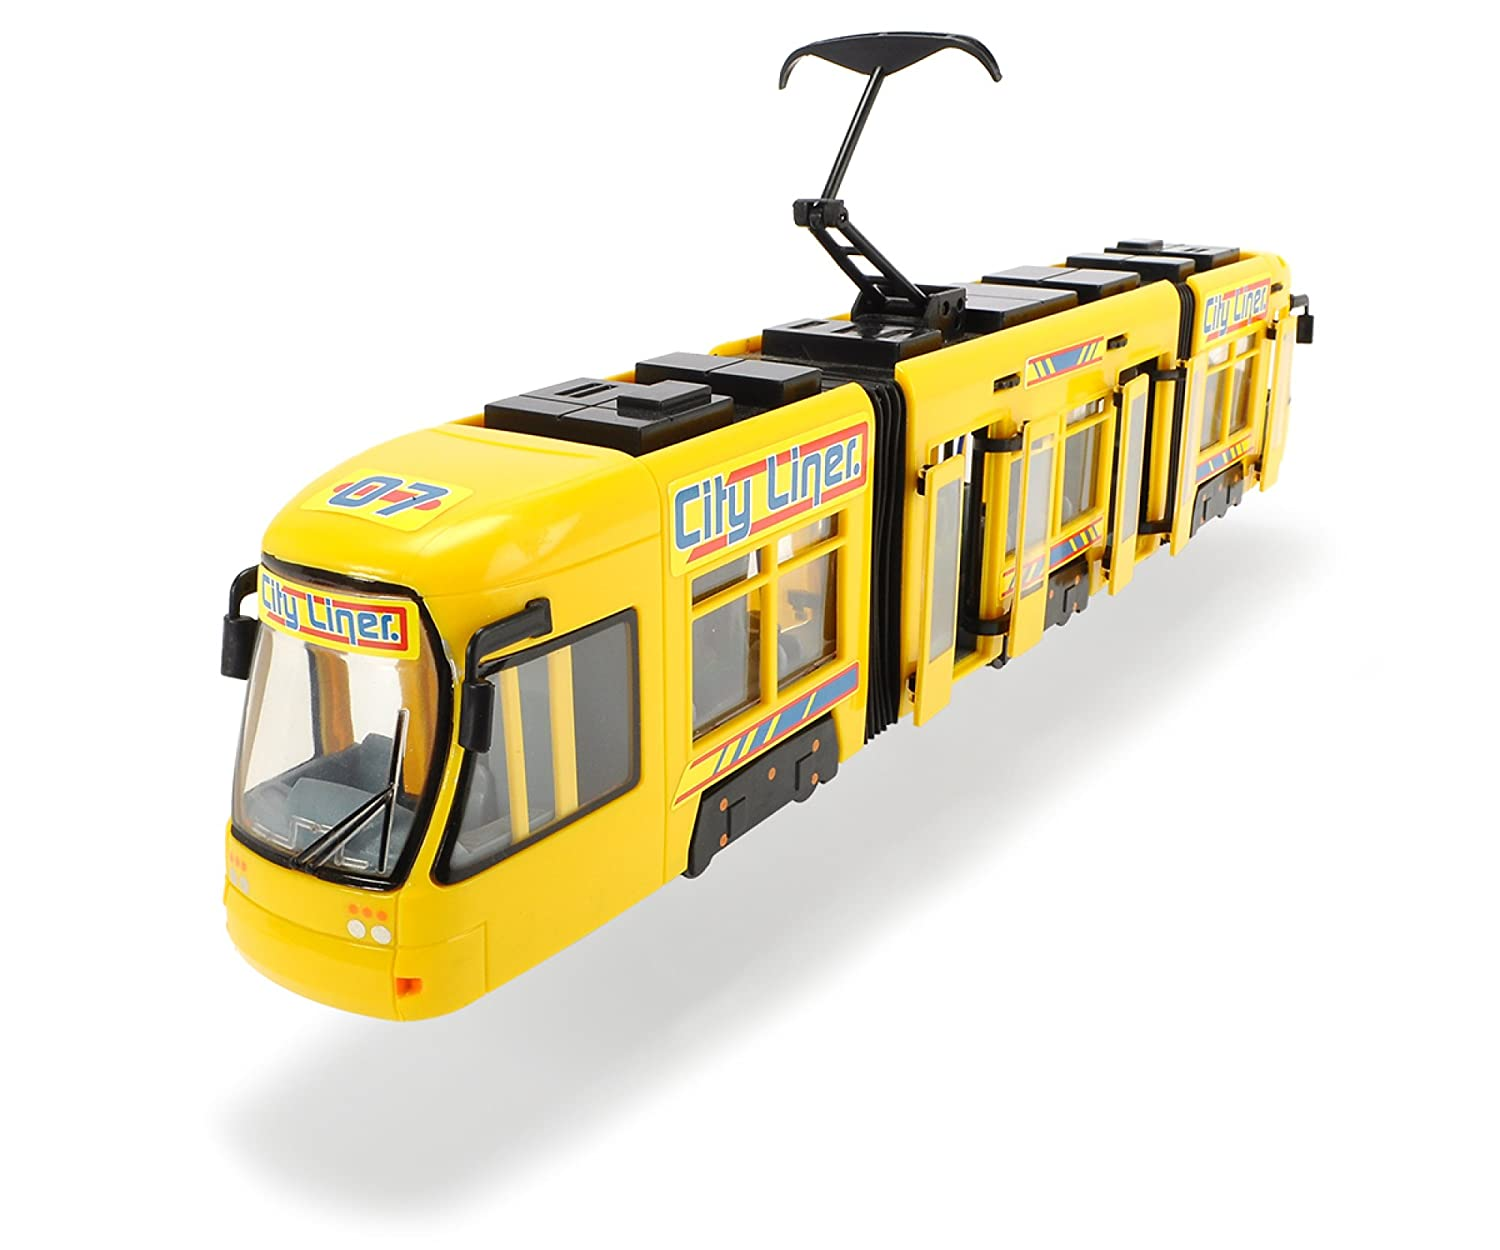 /City Liner Dickie Toys 203749005/